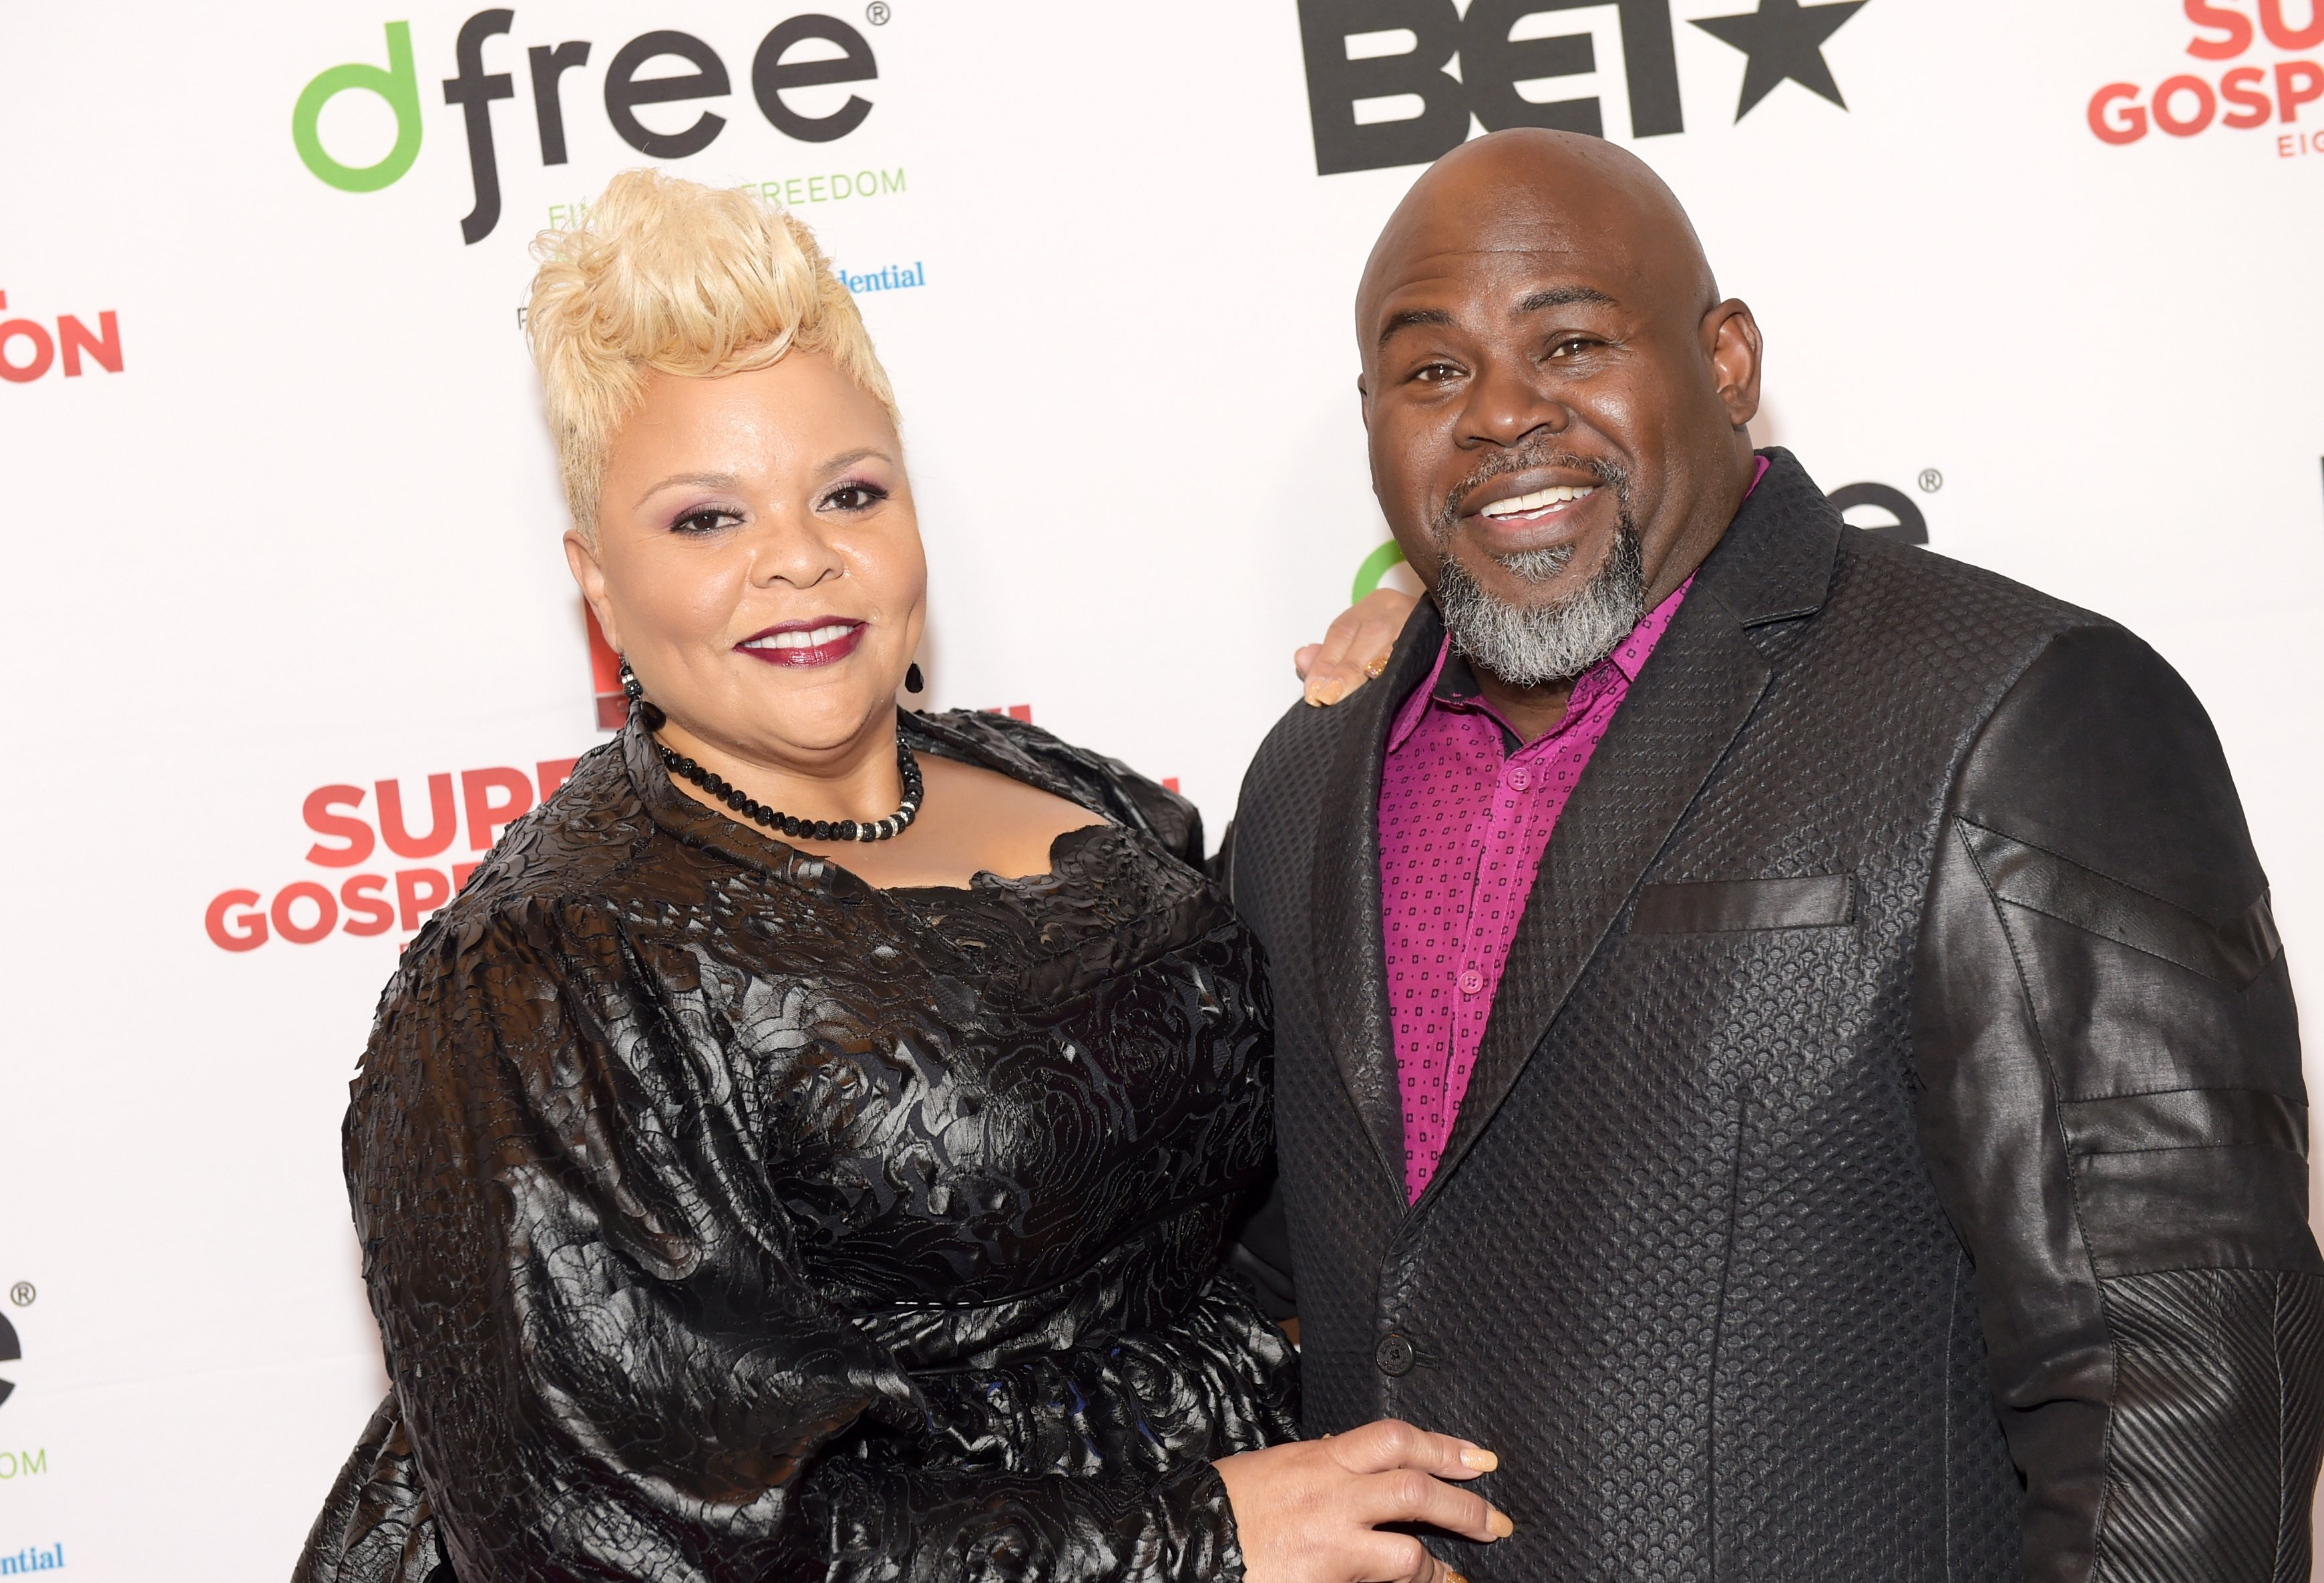 Tamela Mann and David Mann at the BET Presents Super Bowl Gospel Celebration on February 3, 2017. | Photo: Getty Images